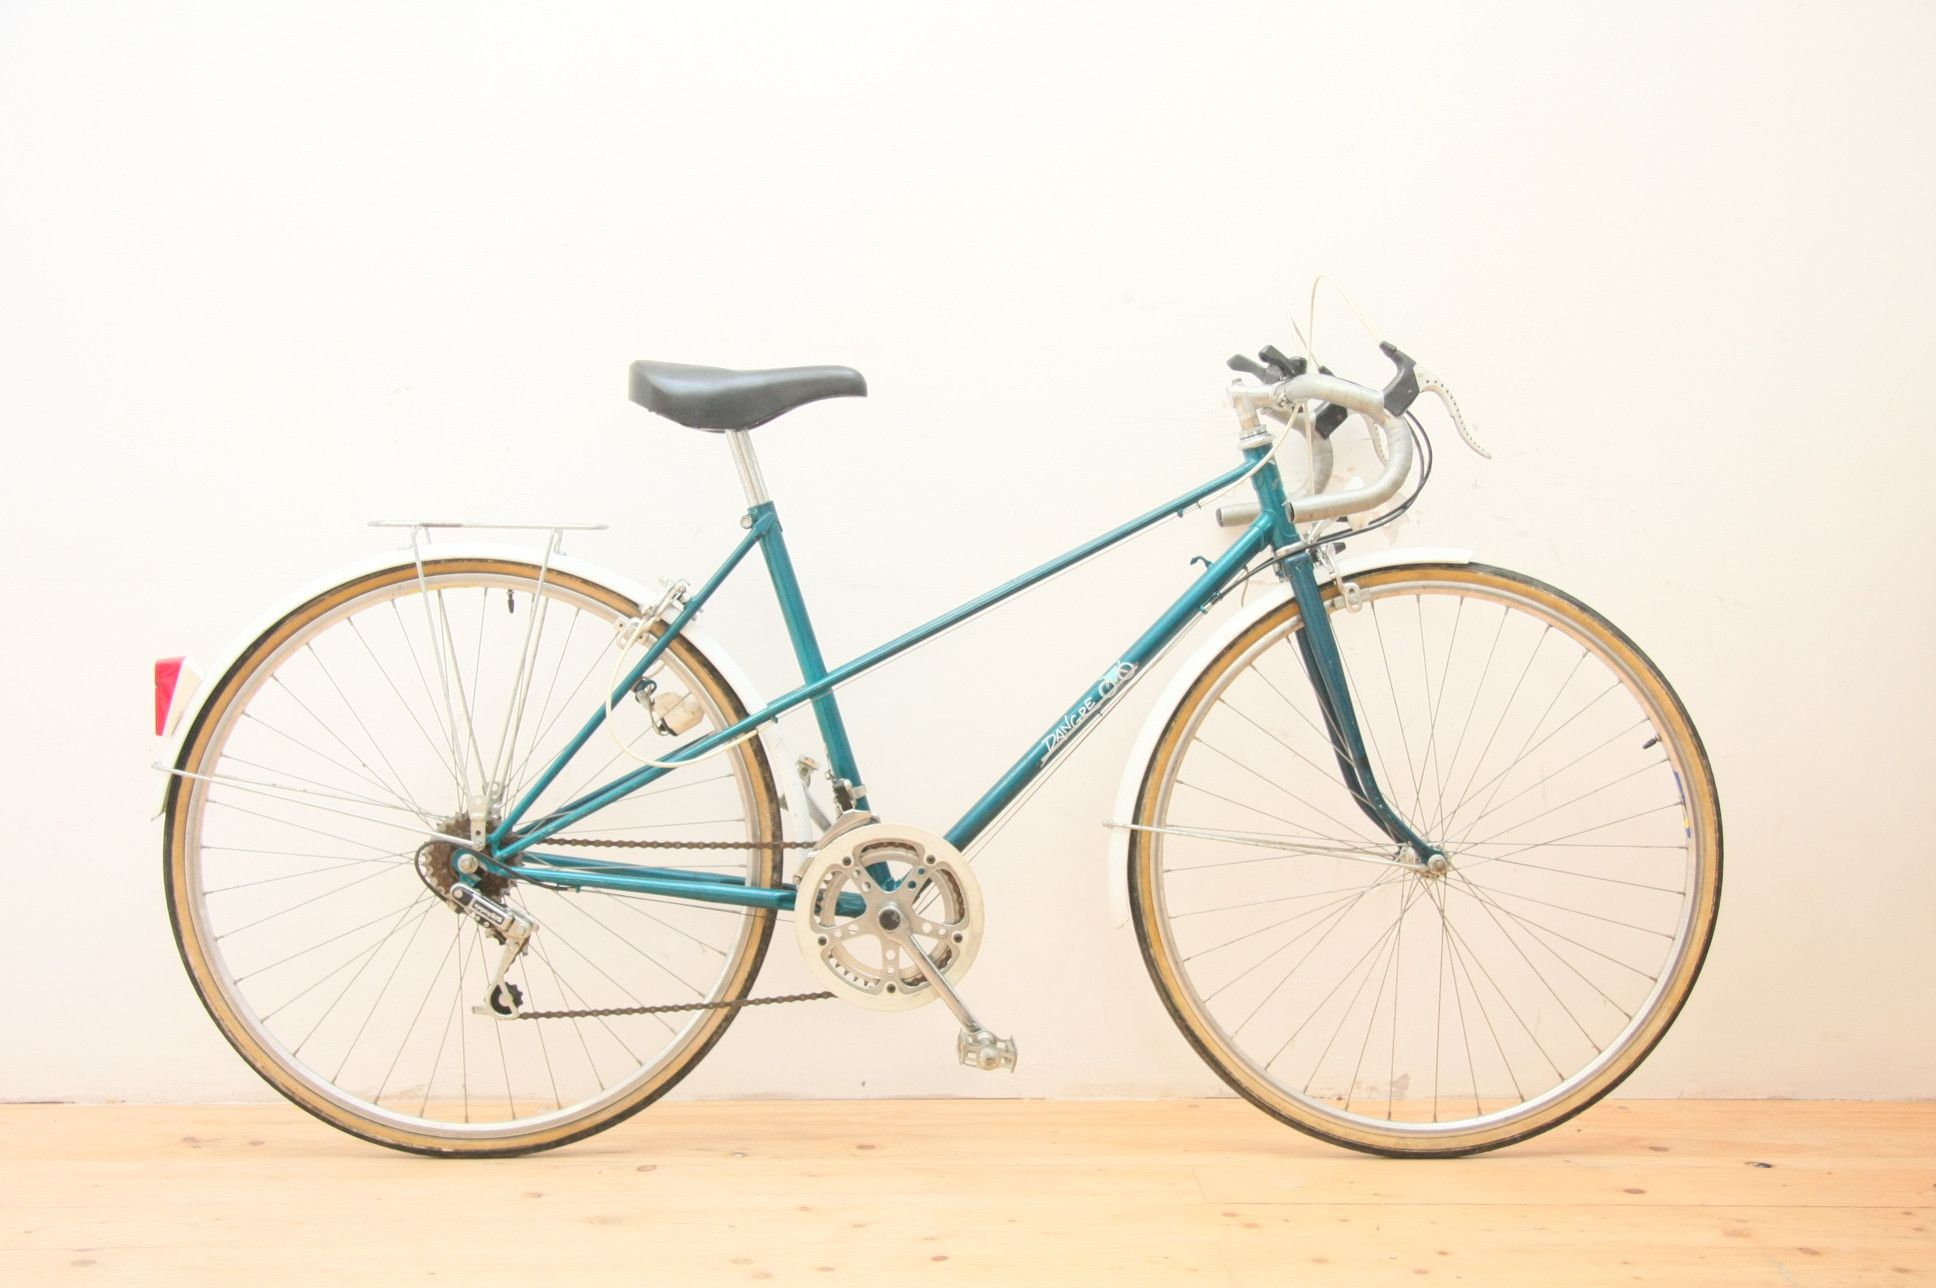 48cm Dangre Ladies French Mixte Bicycle With Images Bicycle